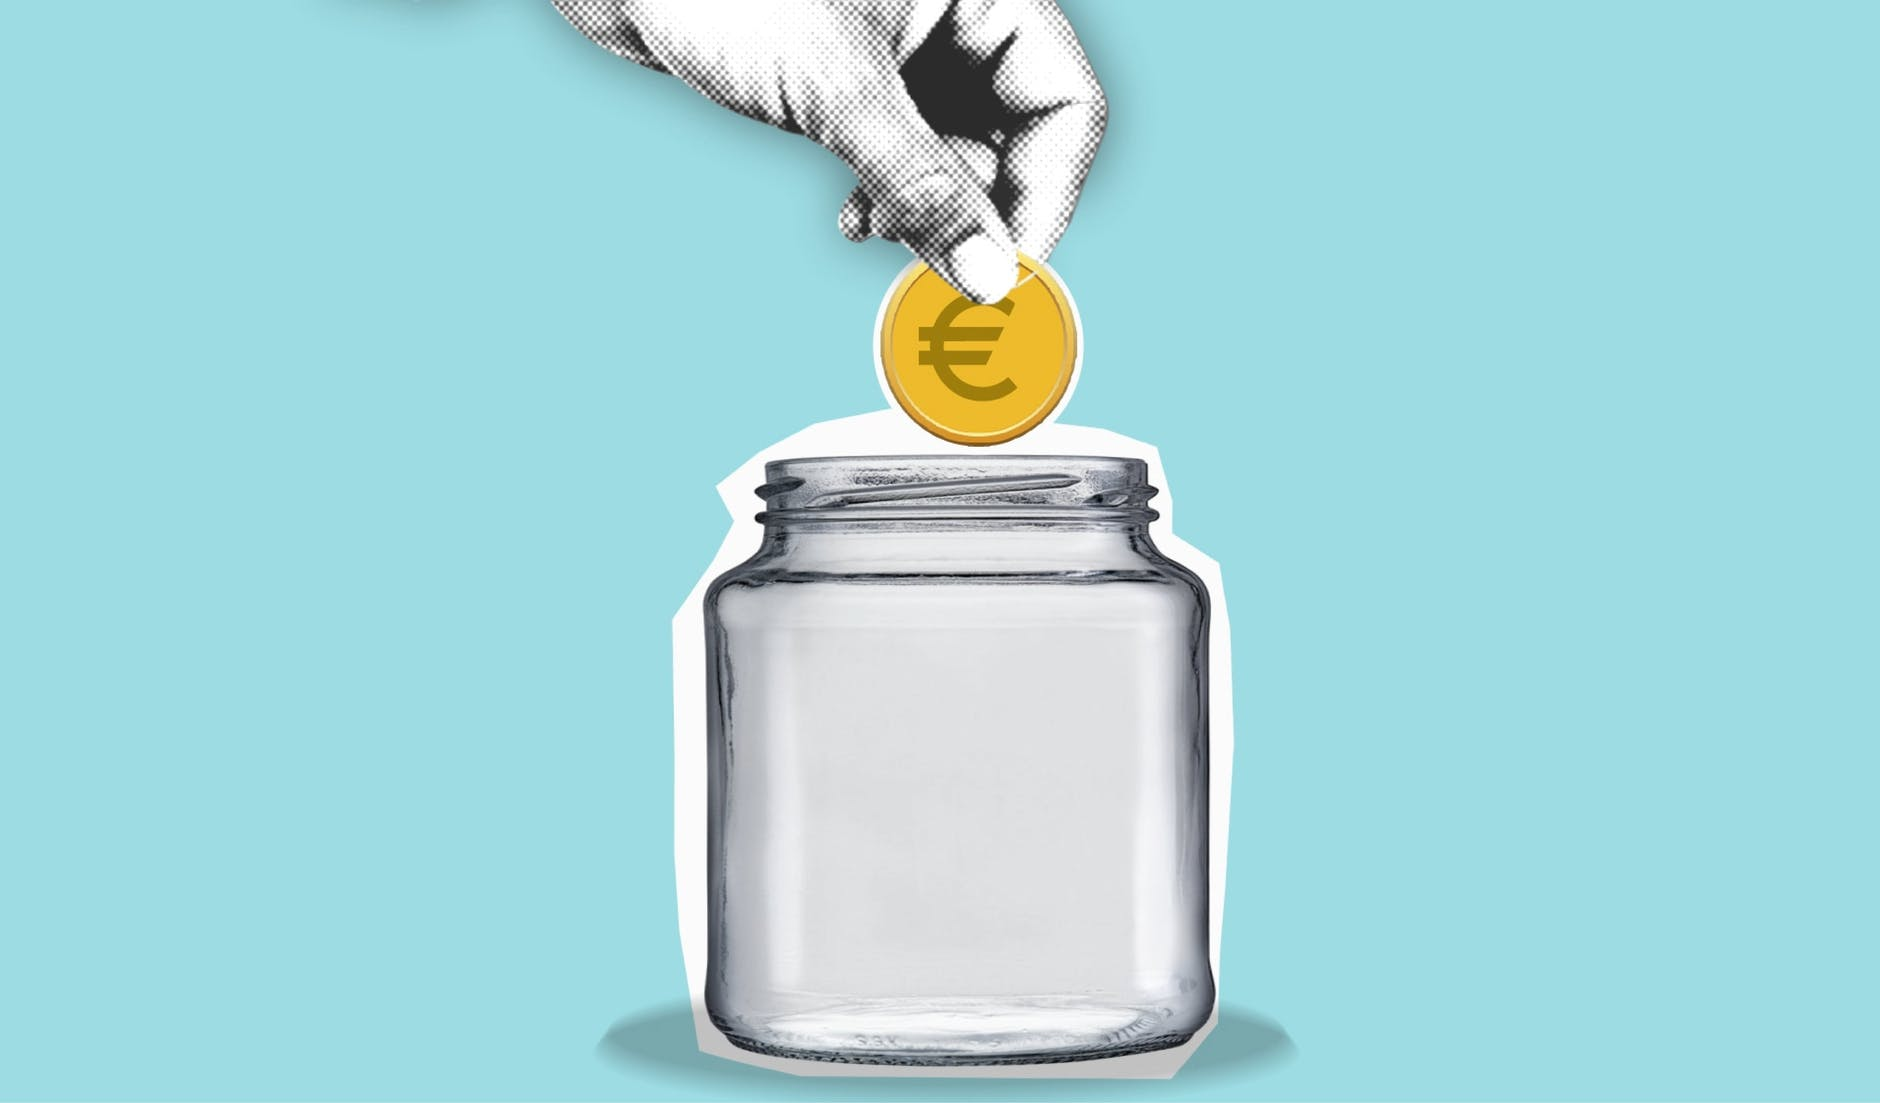 cutout paper illustration of hand with coin above jar